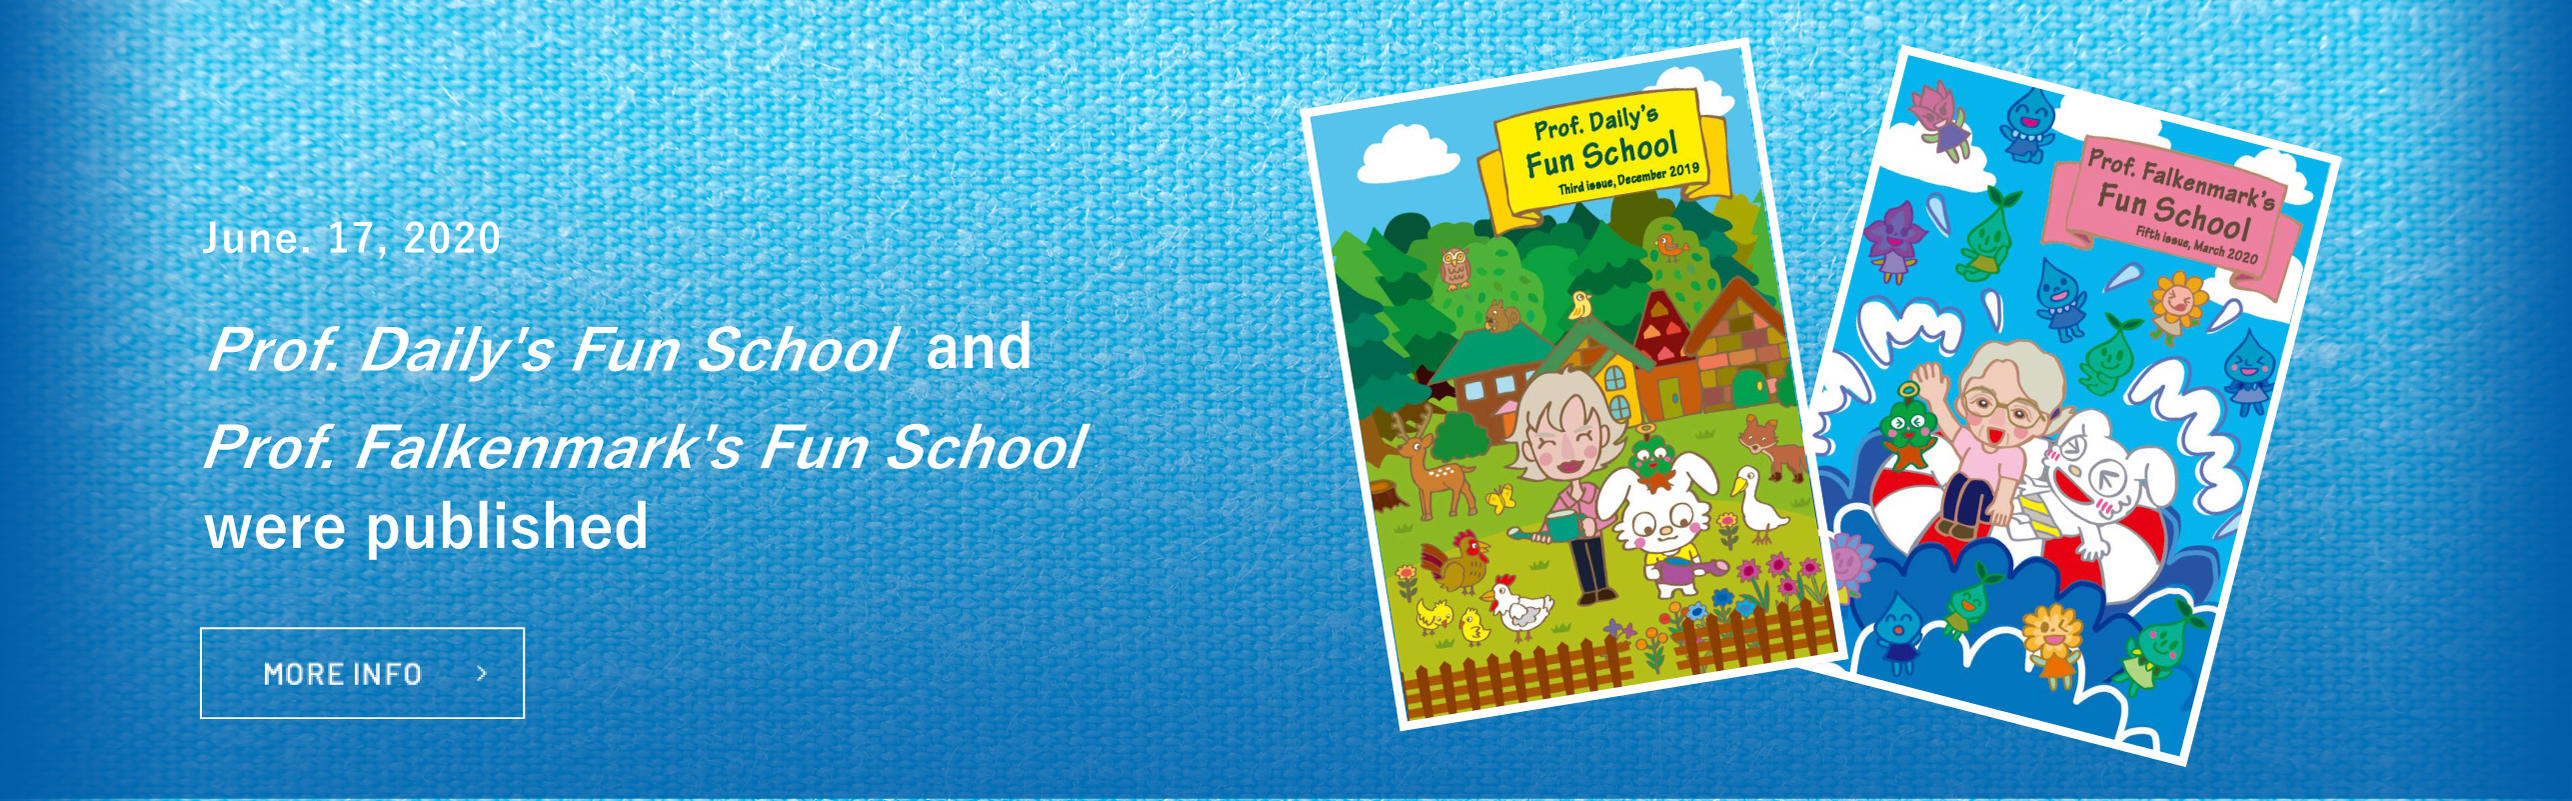 Prof. Daily's Fun School and  Prof. Falkenmark's Fun School were published